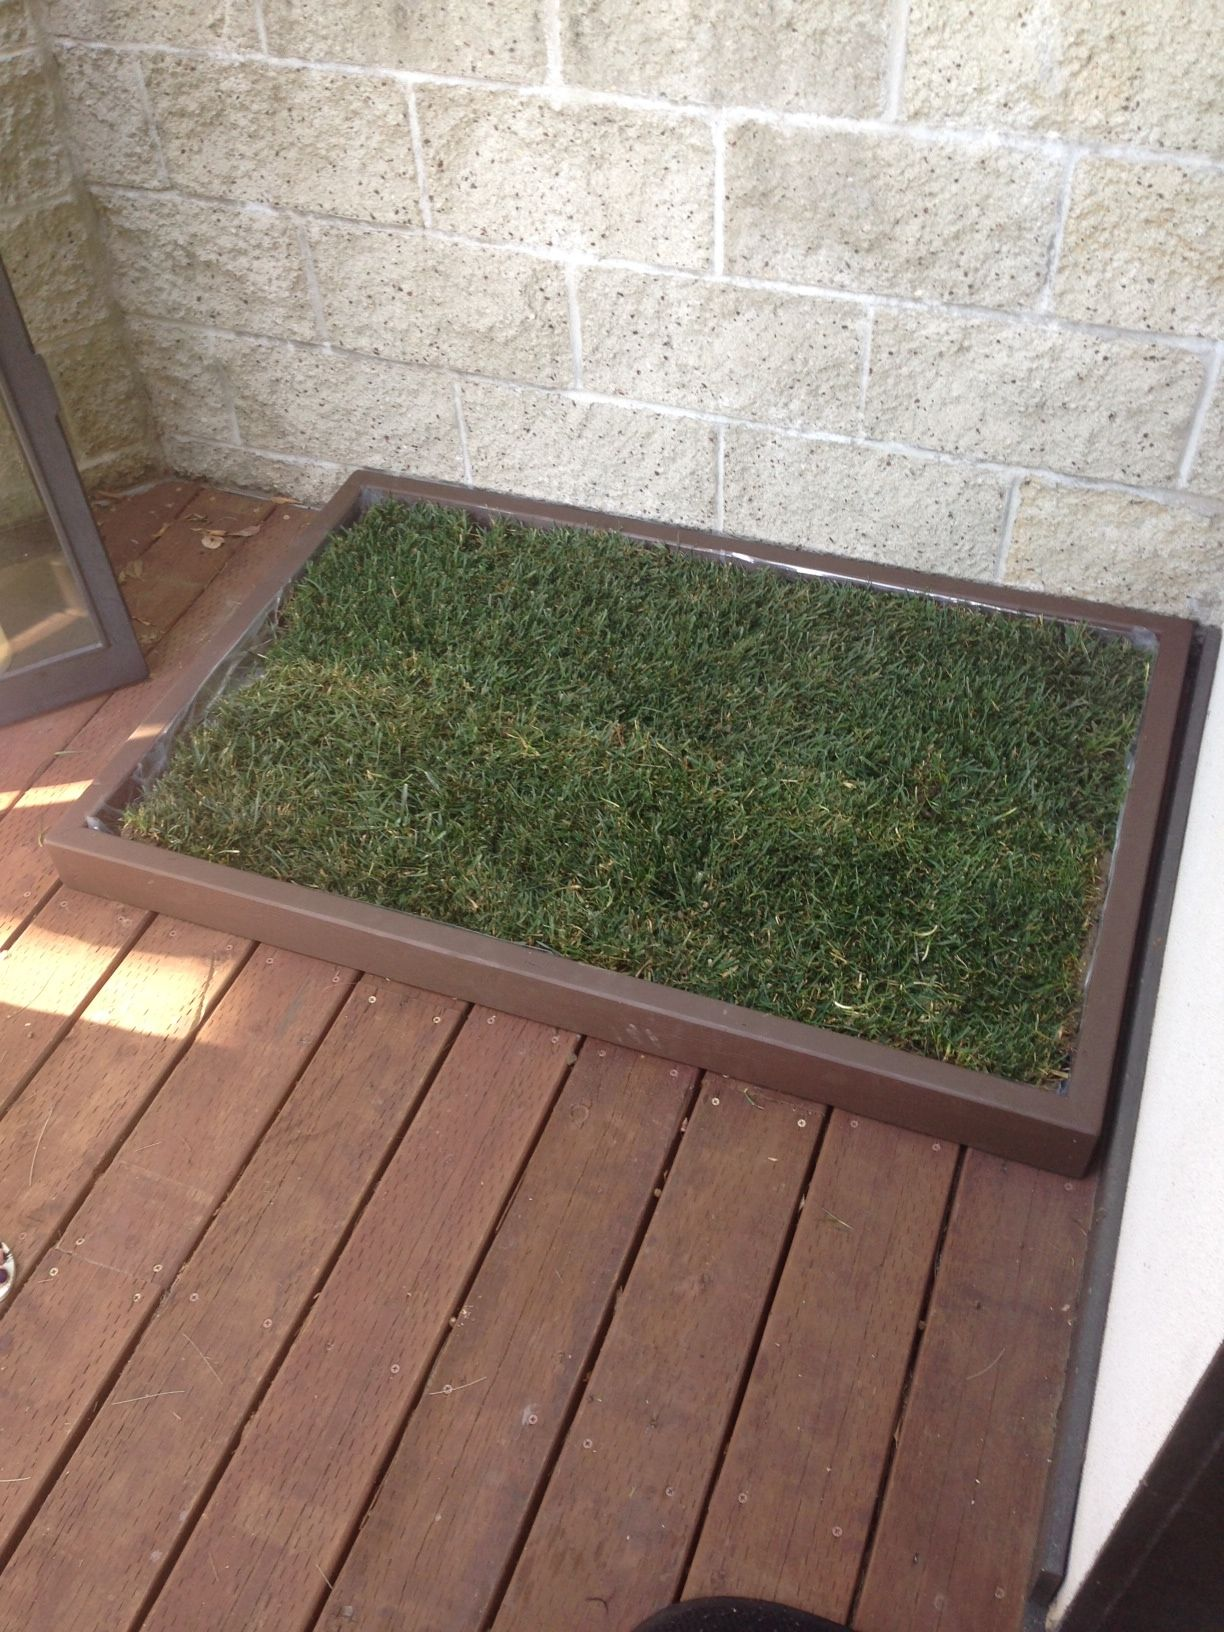 doggy and the city large dog litter box looks great on this deck